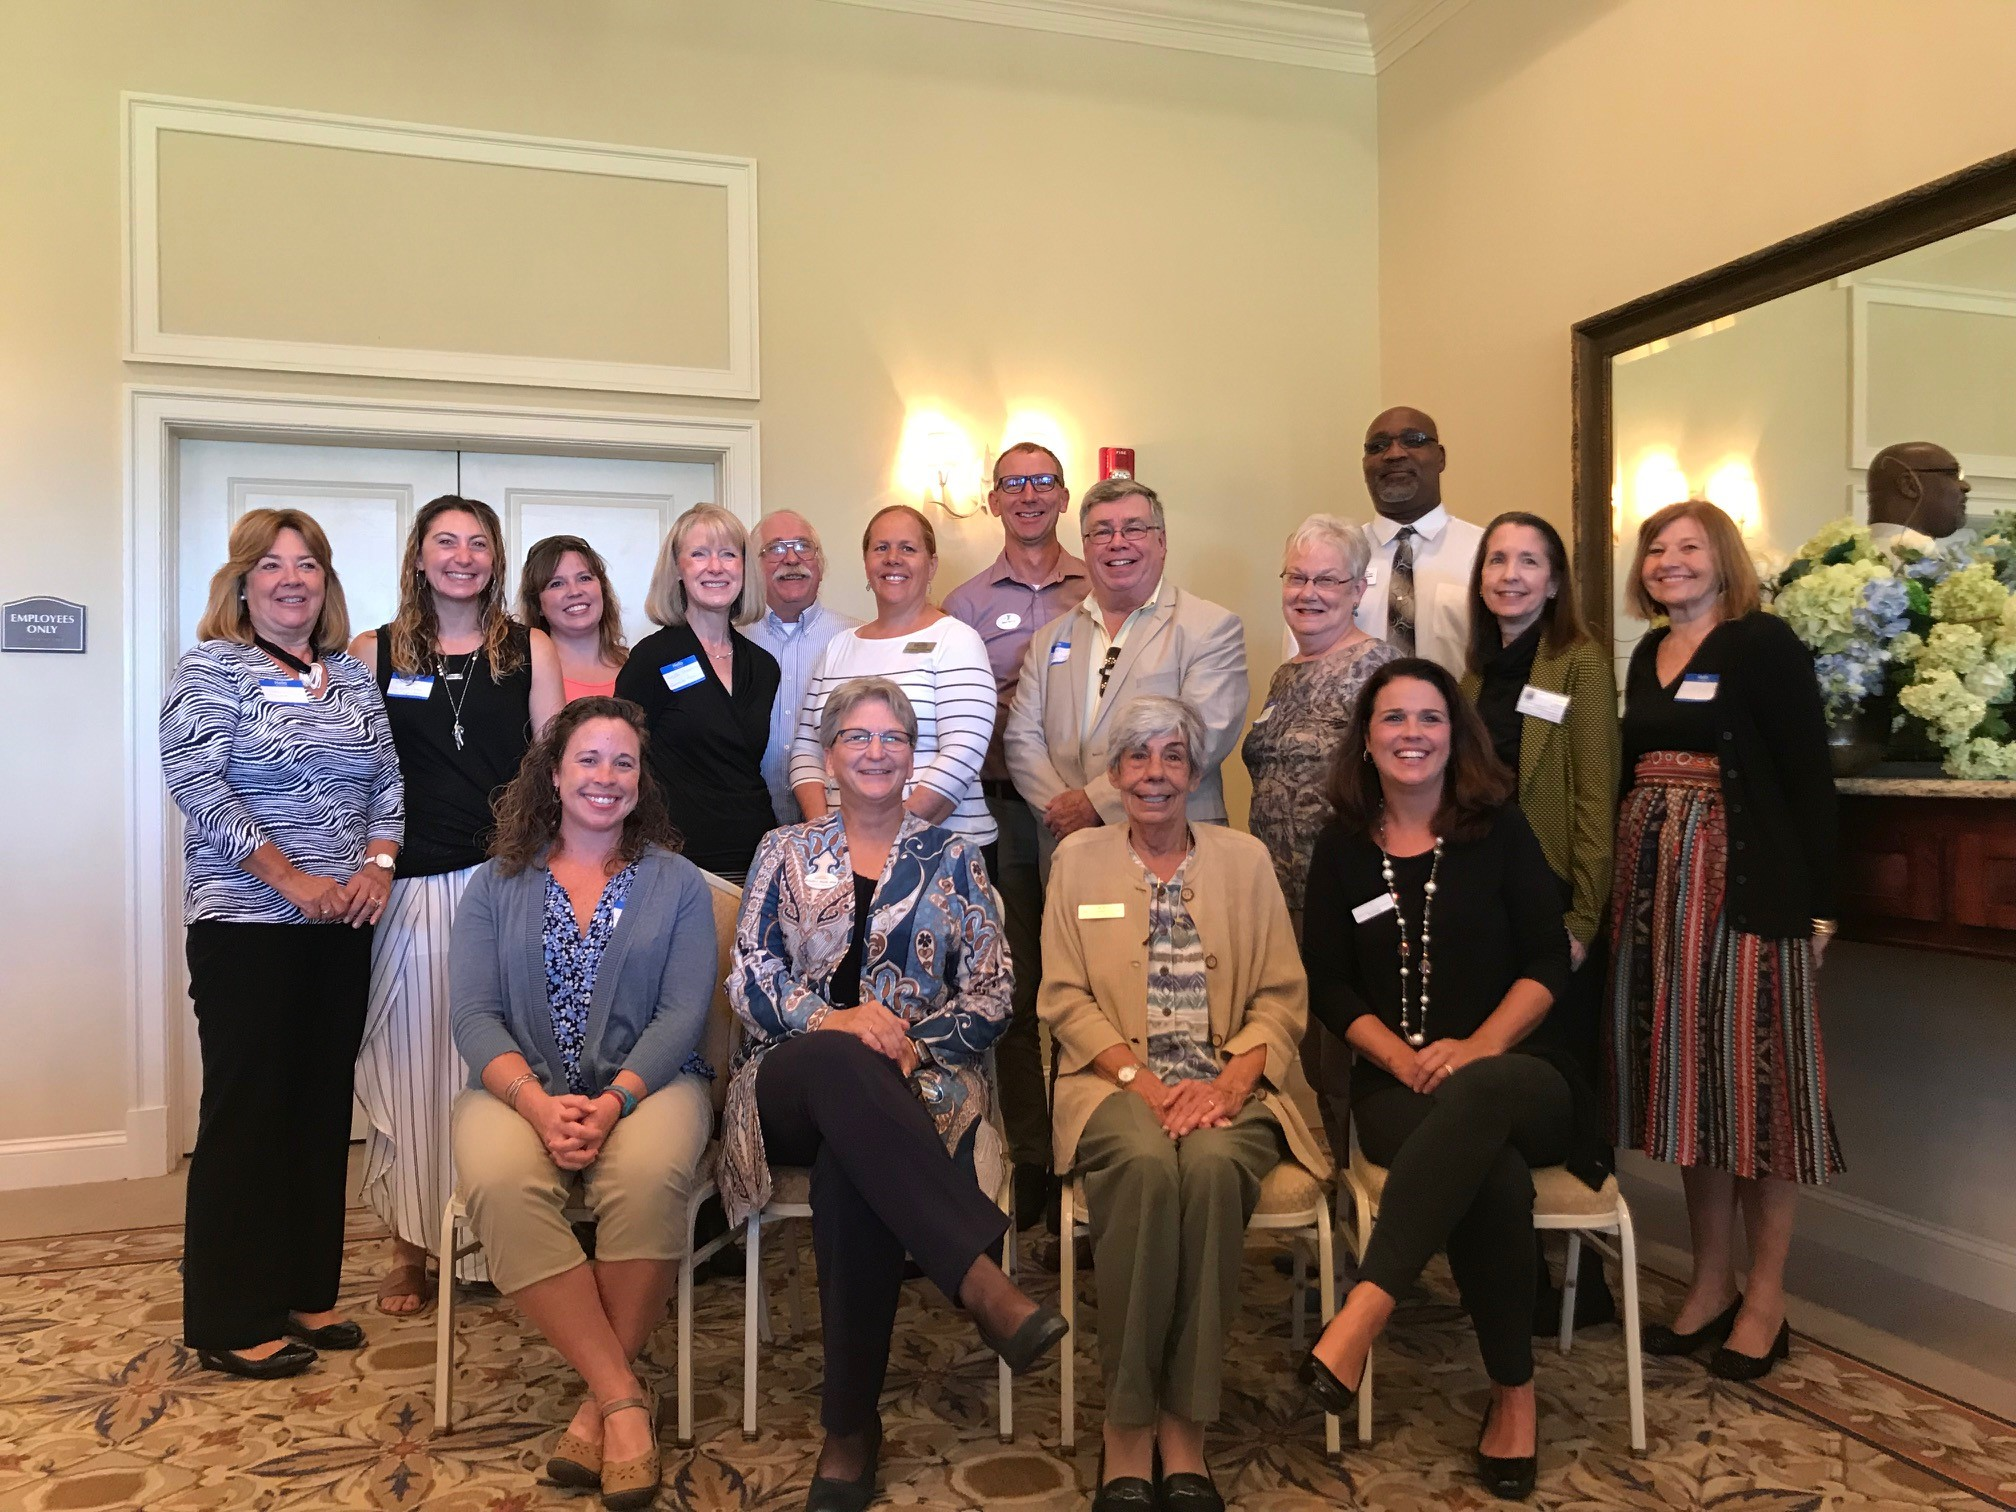 Front Row: Sarah Hallas, NC Coastal Federation; Rhonda Morris, Kids First; Gail Sonnesso, GEM; and Tina Pennington, Beloved Haven. Back Row: Toni Joyner, Food for Thought; Jessica Taylor, Dolphin Research Center; Laura Alvarico, Meals on Wheels; Heidi Prentiss, Albemarle Hopeline; Bill Henkel, Lower Currituck Food Pantry; Jenniffer Albanese, Interfaith Community Outreach; Dean Mattix, YMCA; John Havel, Outer Banks History Center; Nancy Griffin, Room In The Inn; Mike Lewis, Hotline; Kay Minis, Sea Change; and Loismary Hoehne, Currituck-Dare Community Foundation Vice-President.